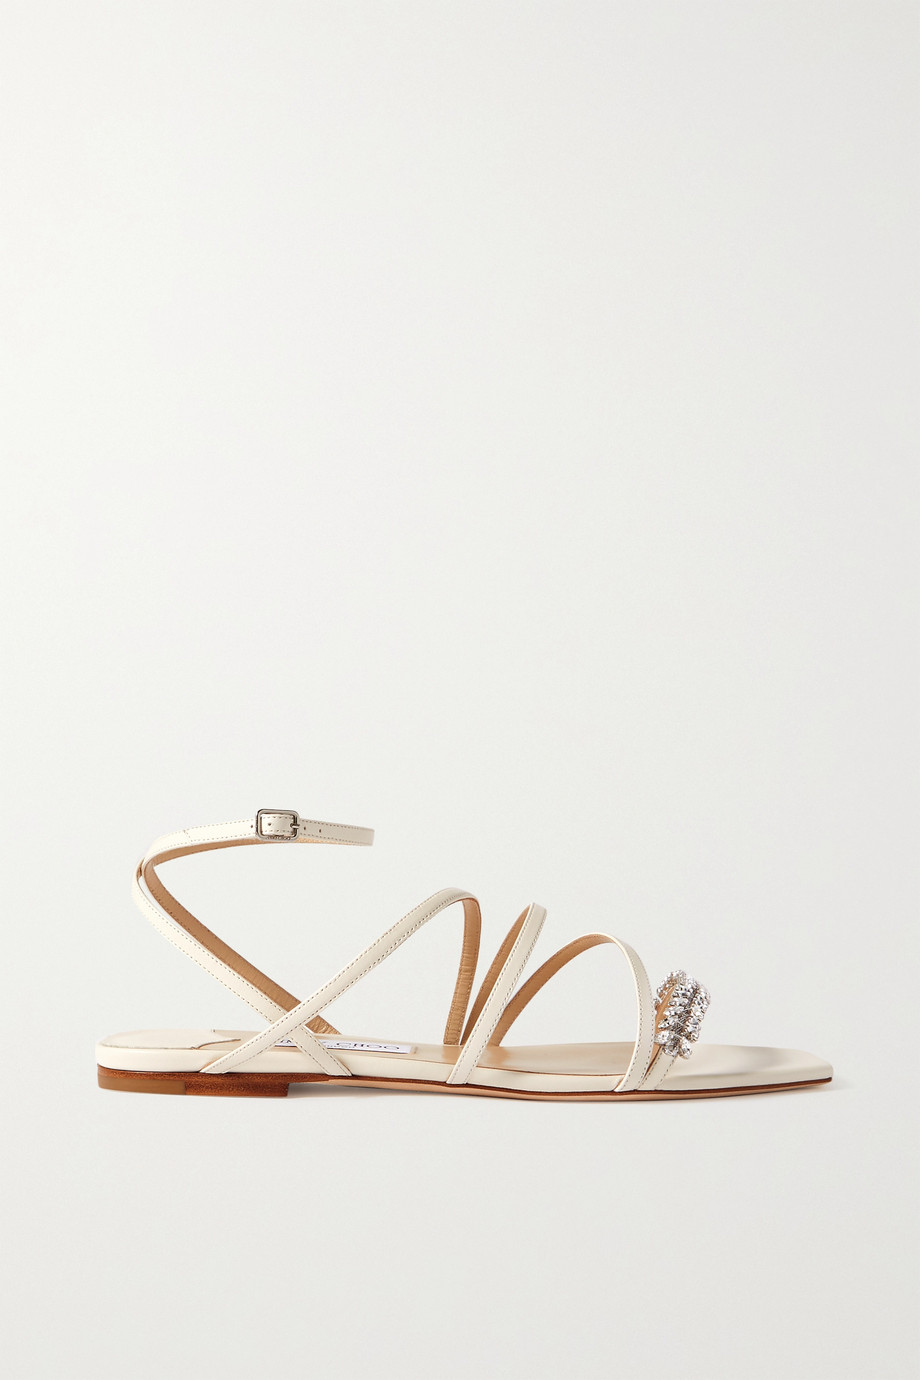 JIMMY CHOO Maesie crystal-embellished leather sandals